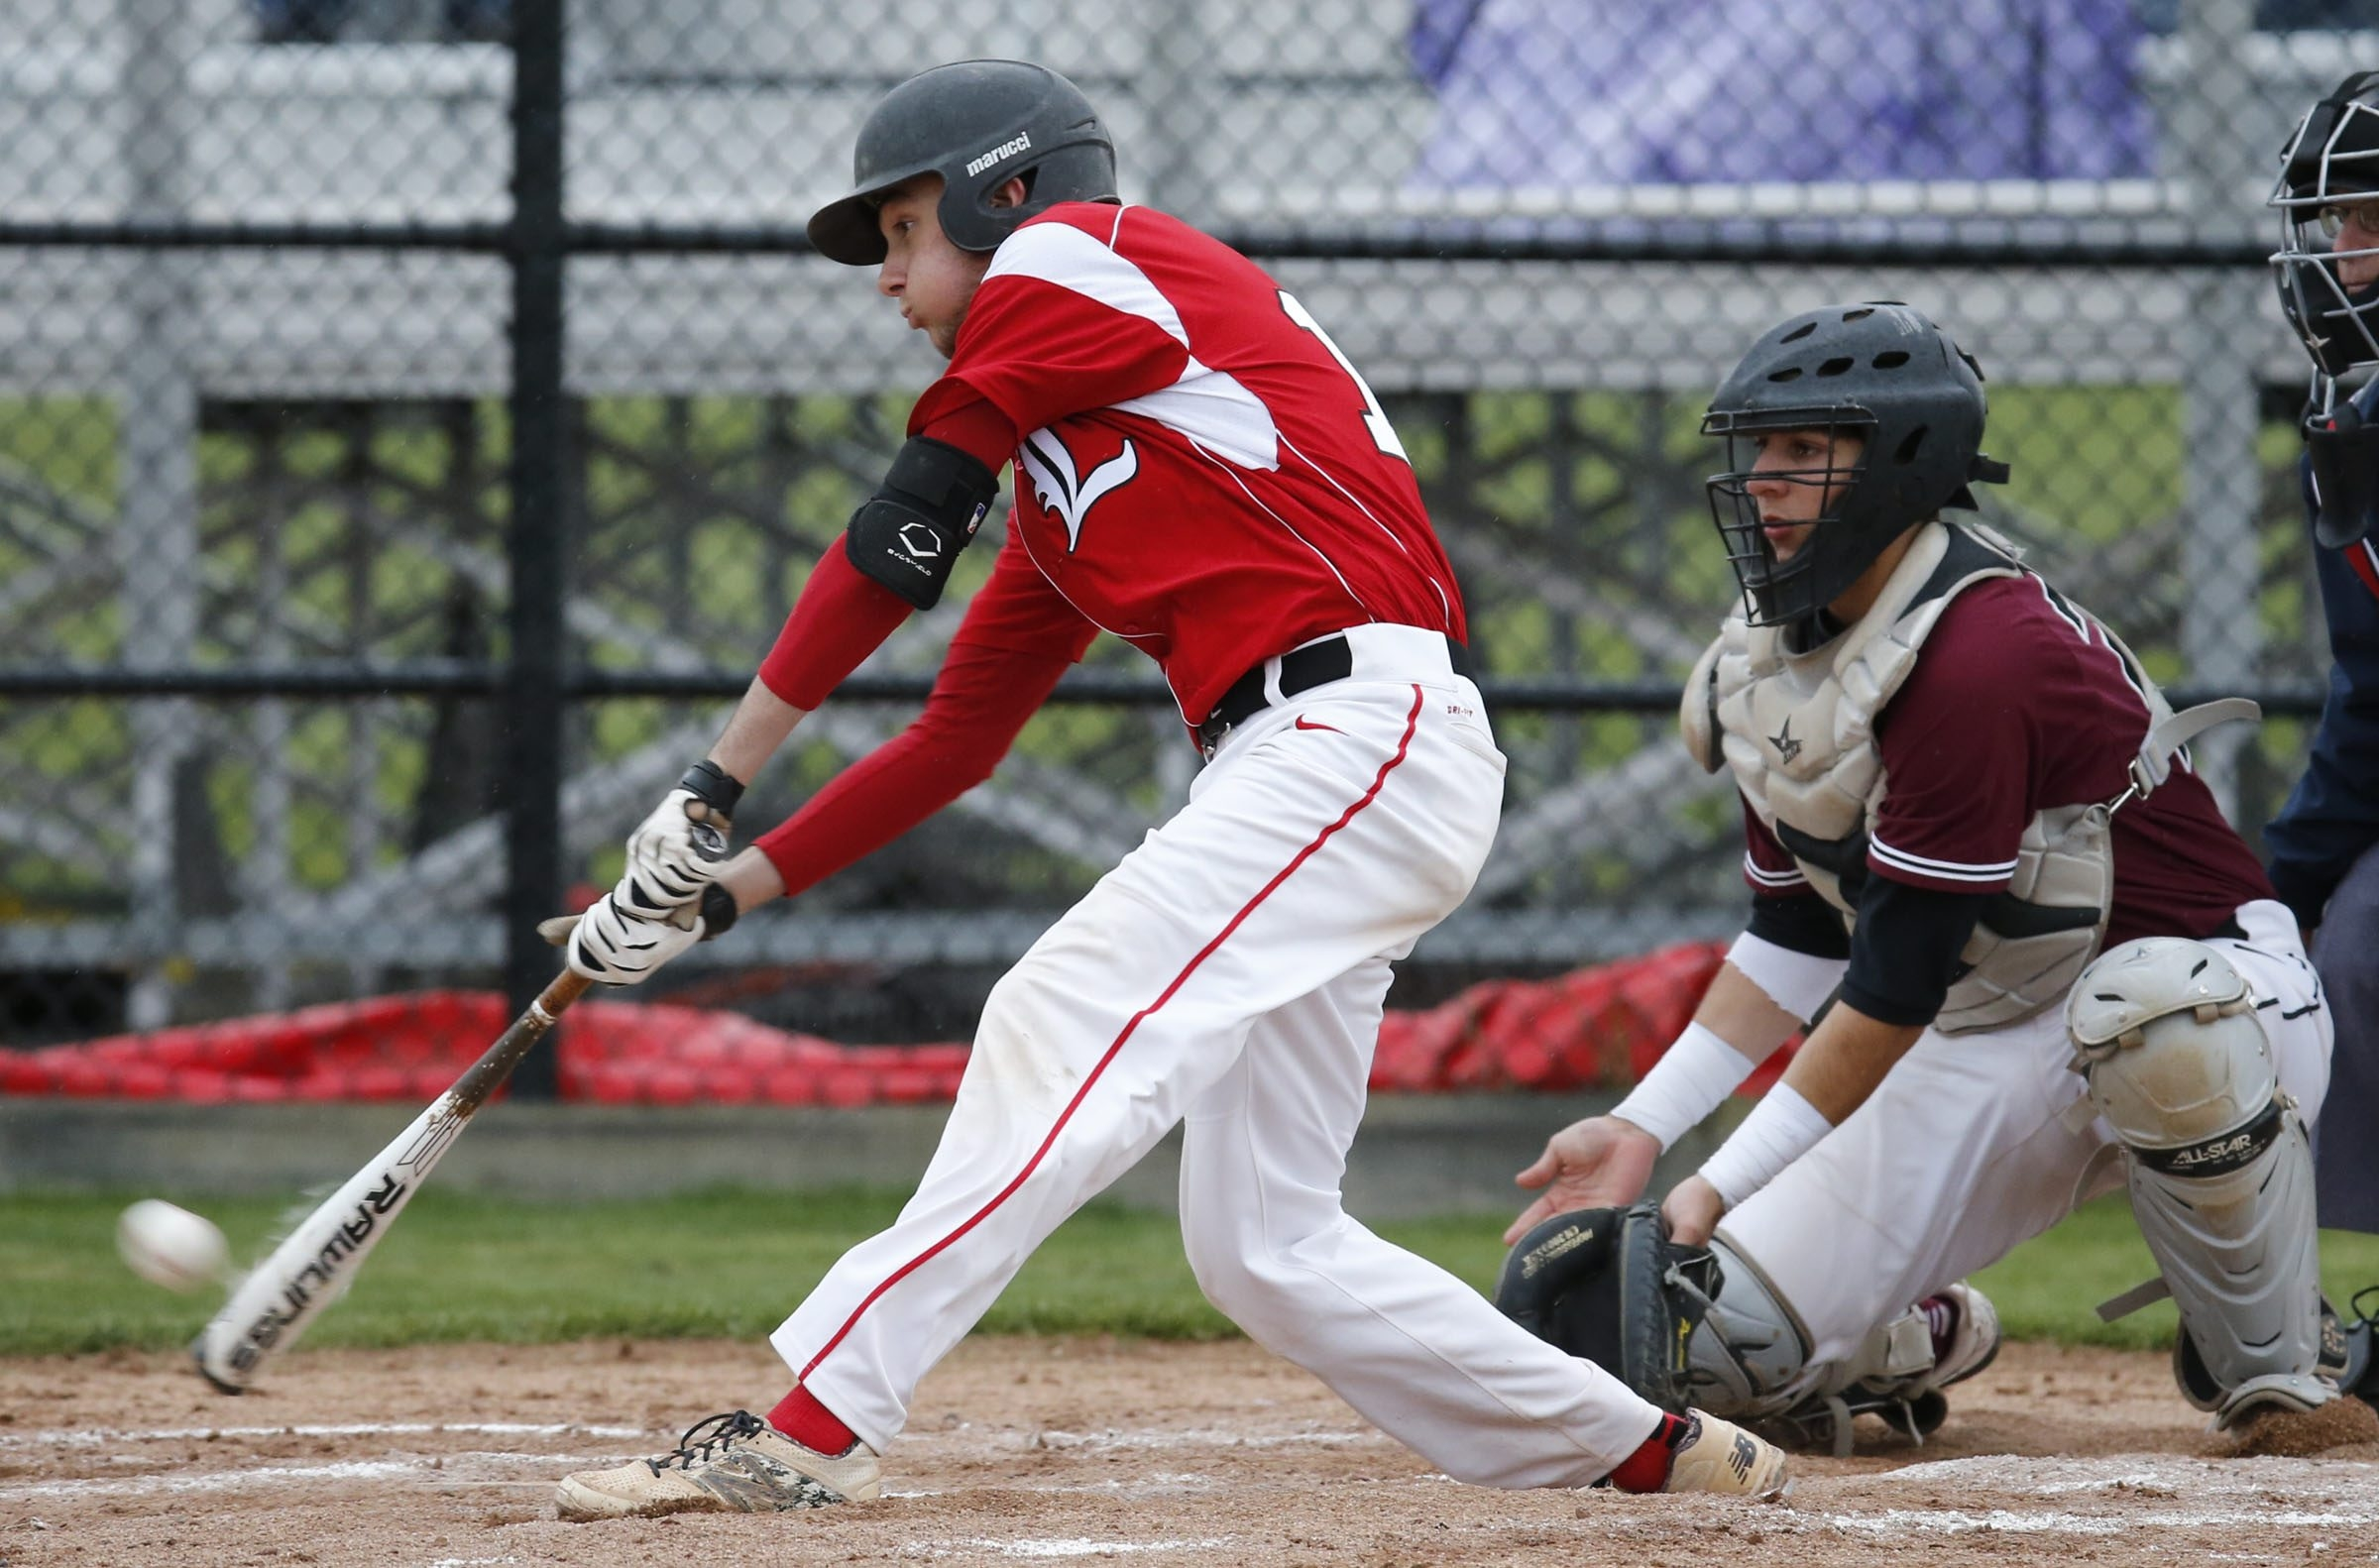 Lancaster's Max Giordano hits a RBI double during the first inning against Orchard Park. He also threw a one-hitter in an impressive victory.